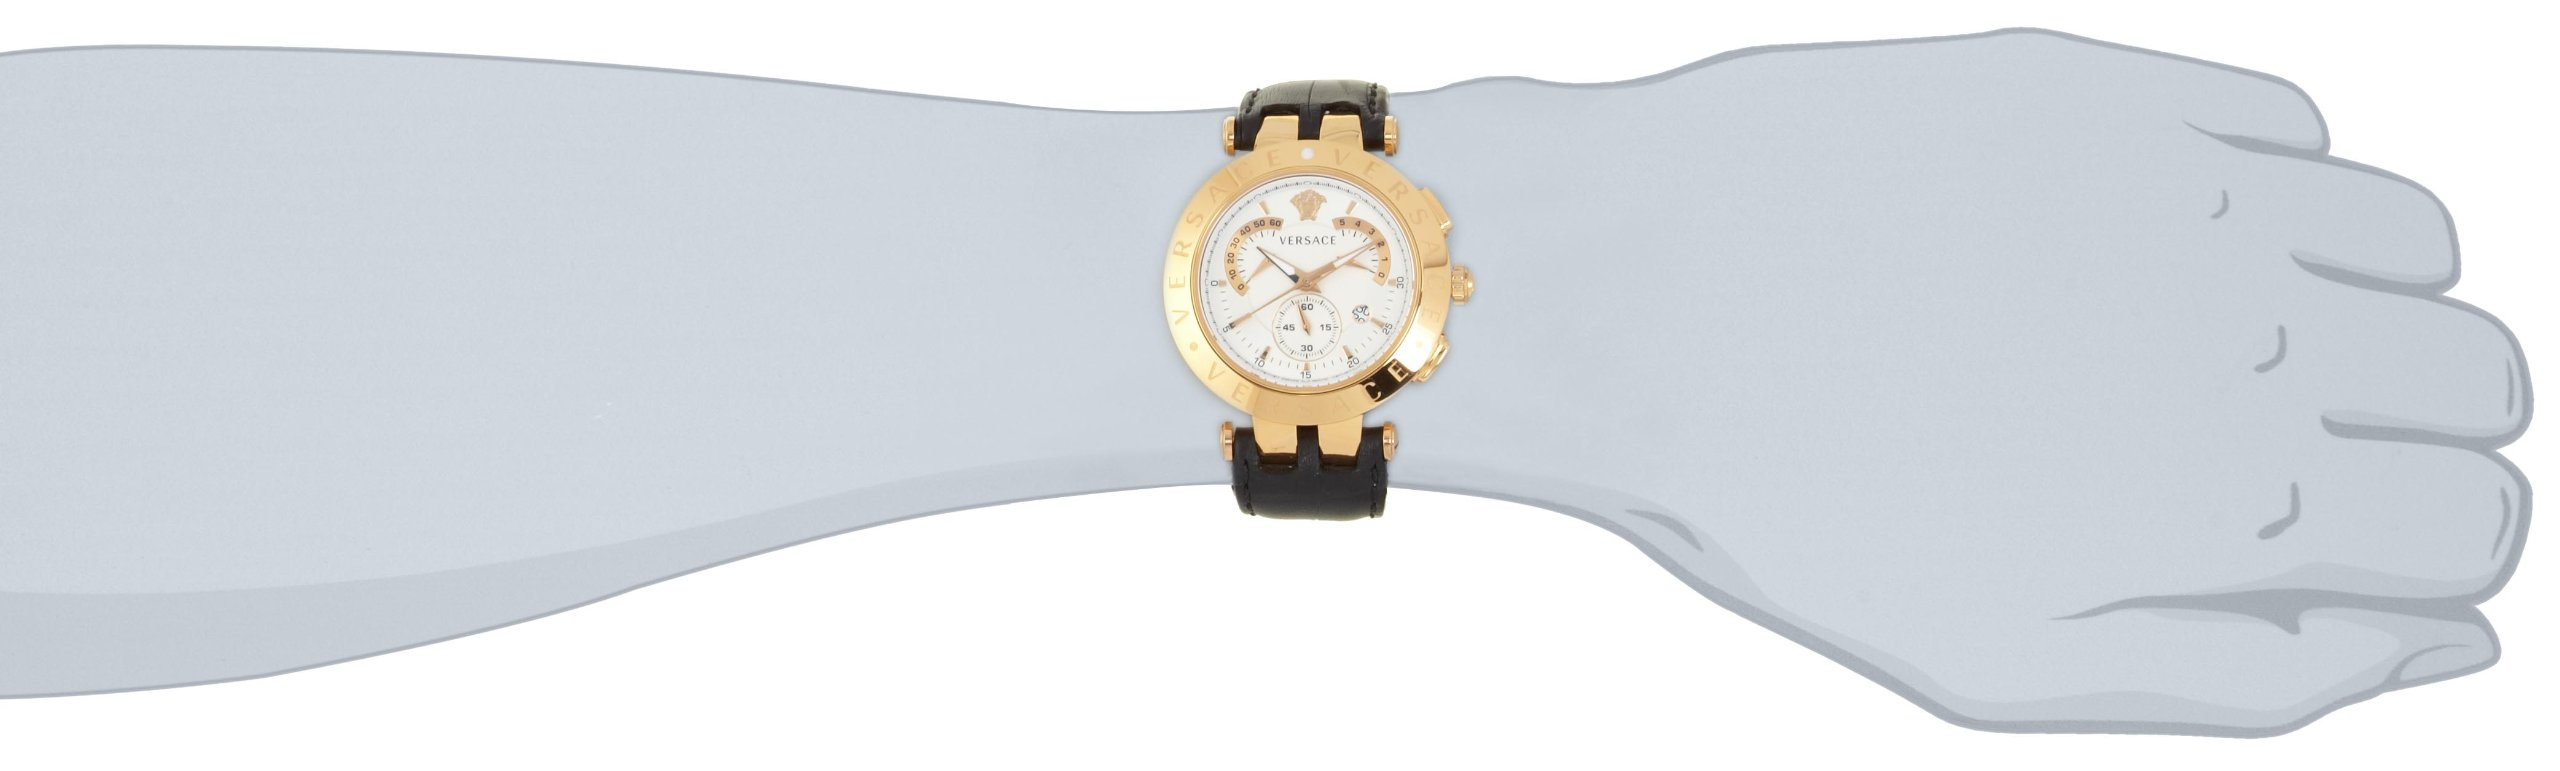 Versace Men's 23C80D002 S009 ''V-Race'' Rose Gold-Plated Watch with Black Leather Band by Versace (Image #3)